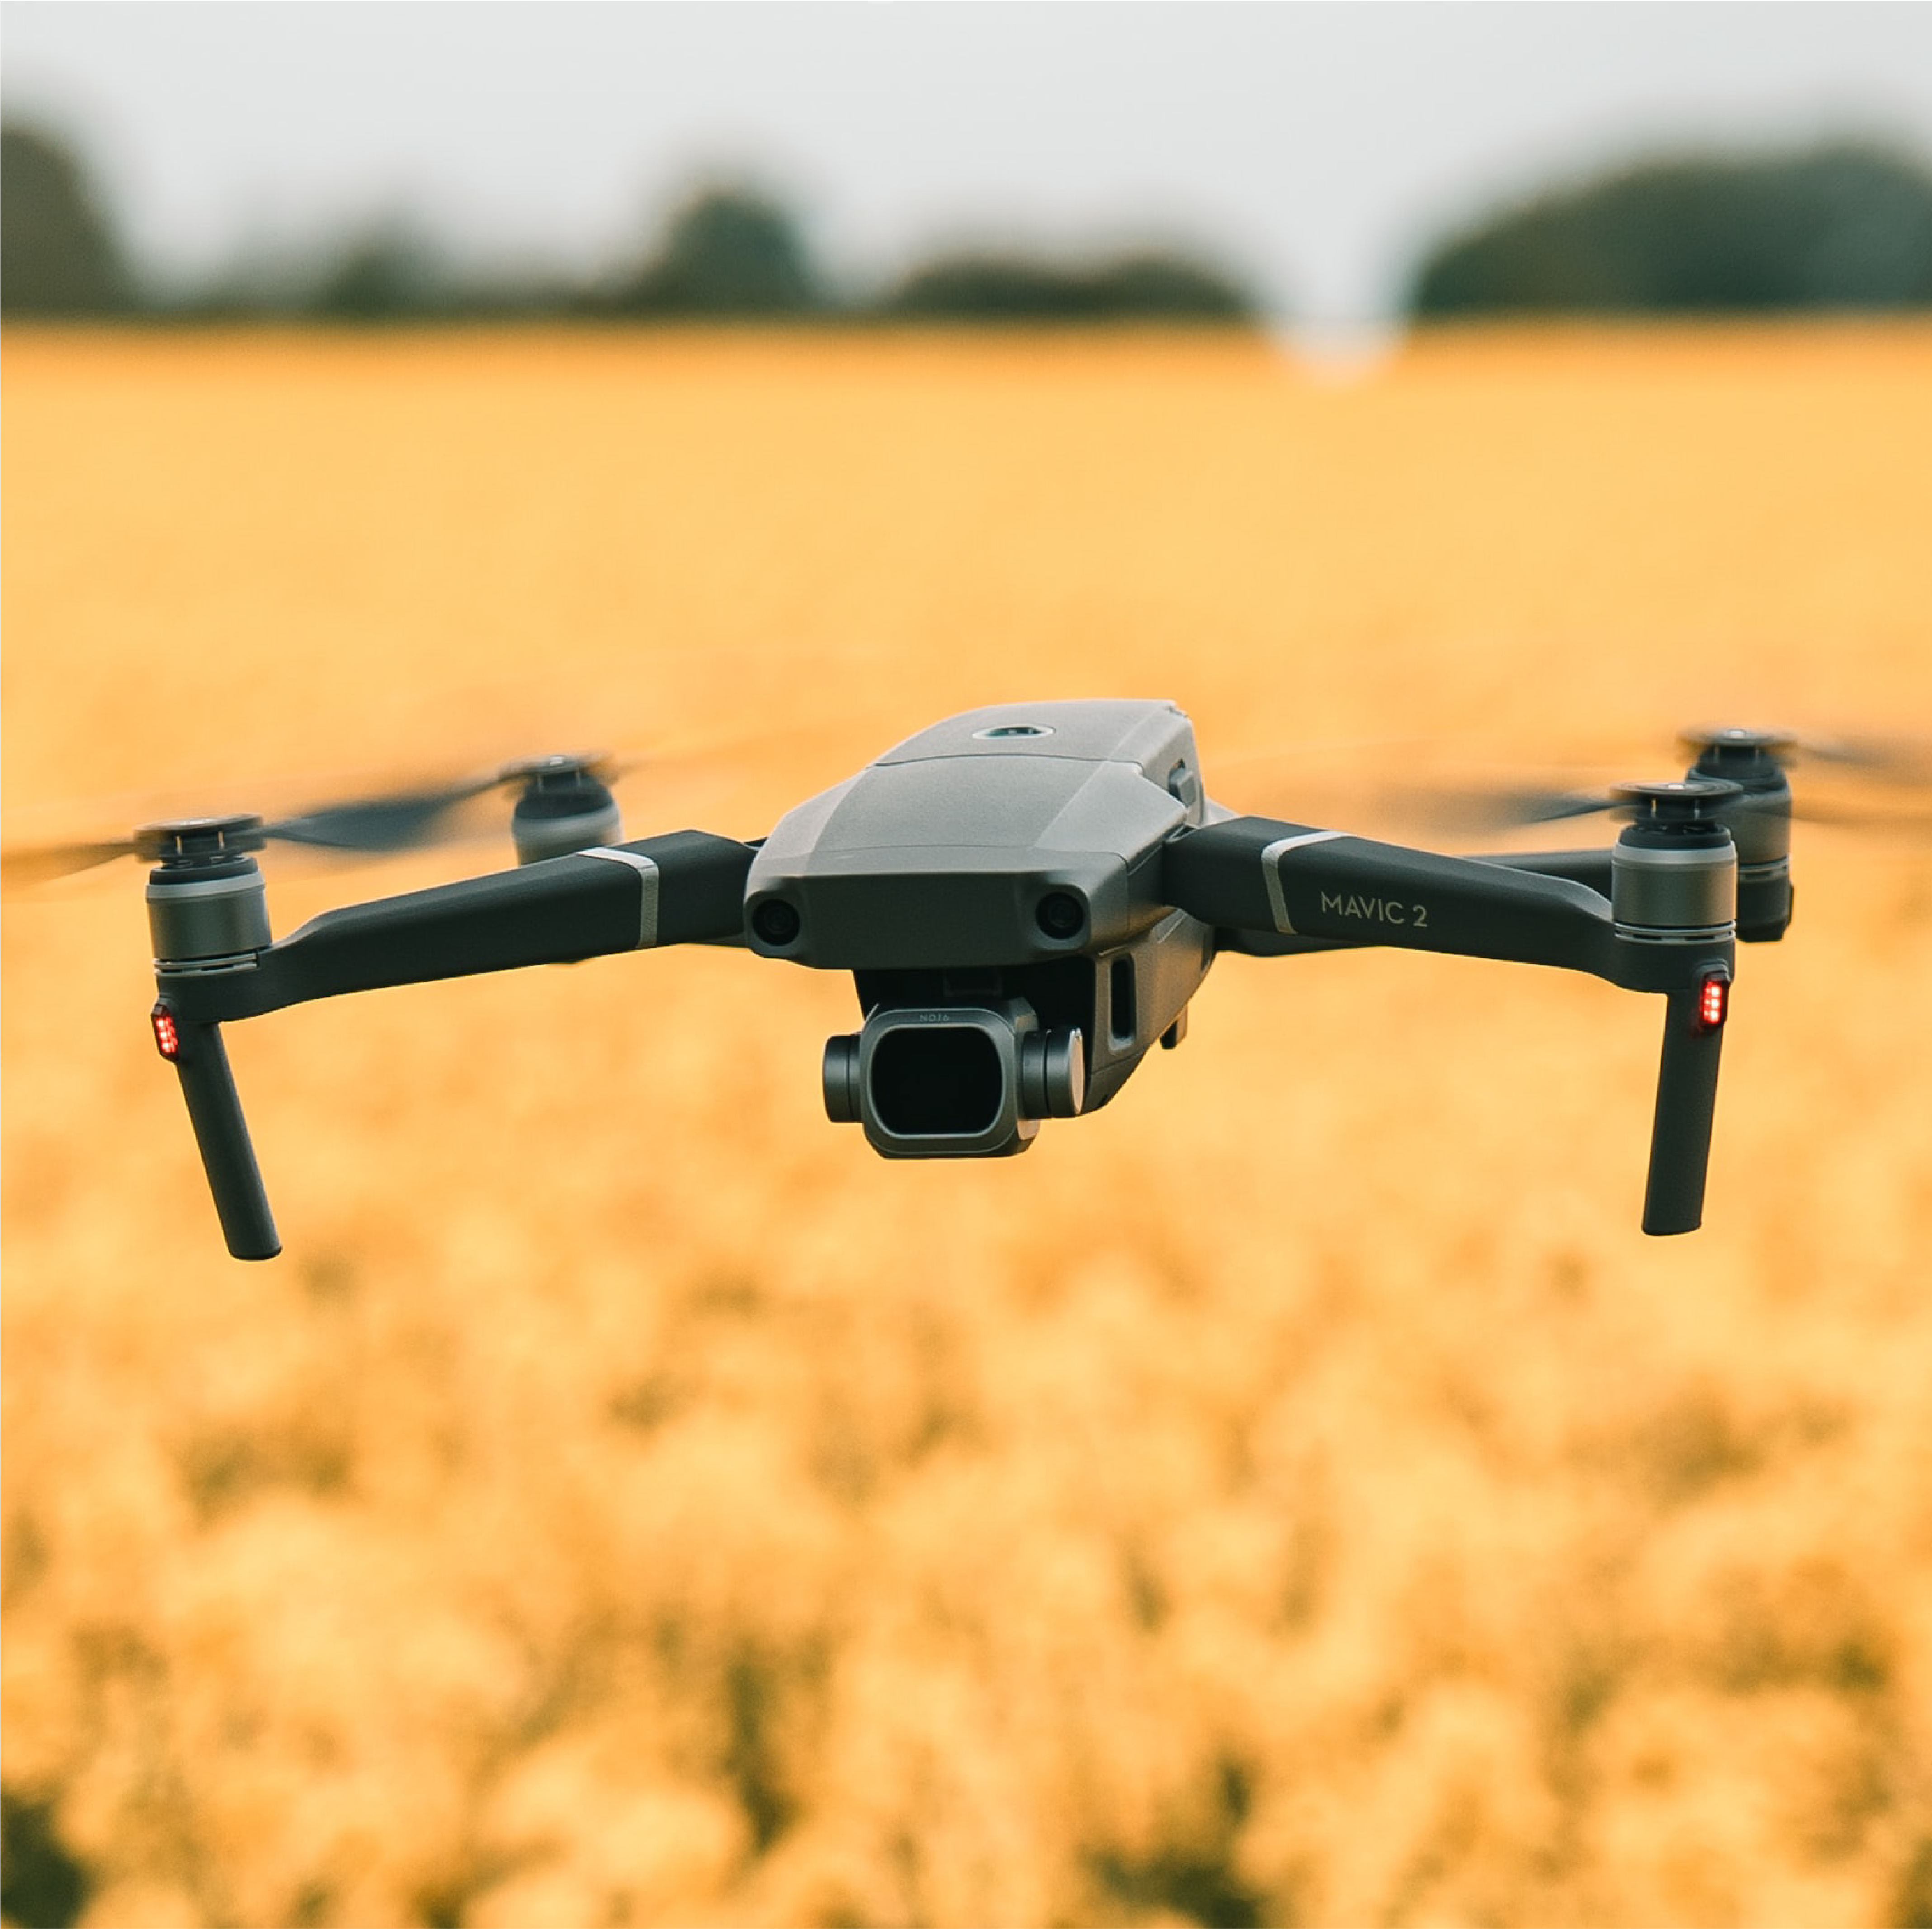 Farming might be one of the oldest trades in the world. Yet emerging technologies are turning agriculture into an exact science.